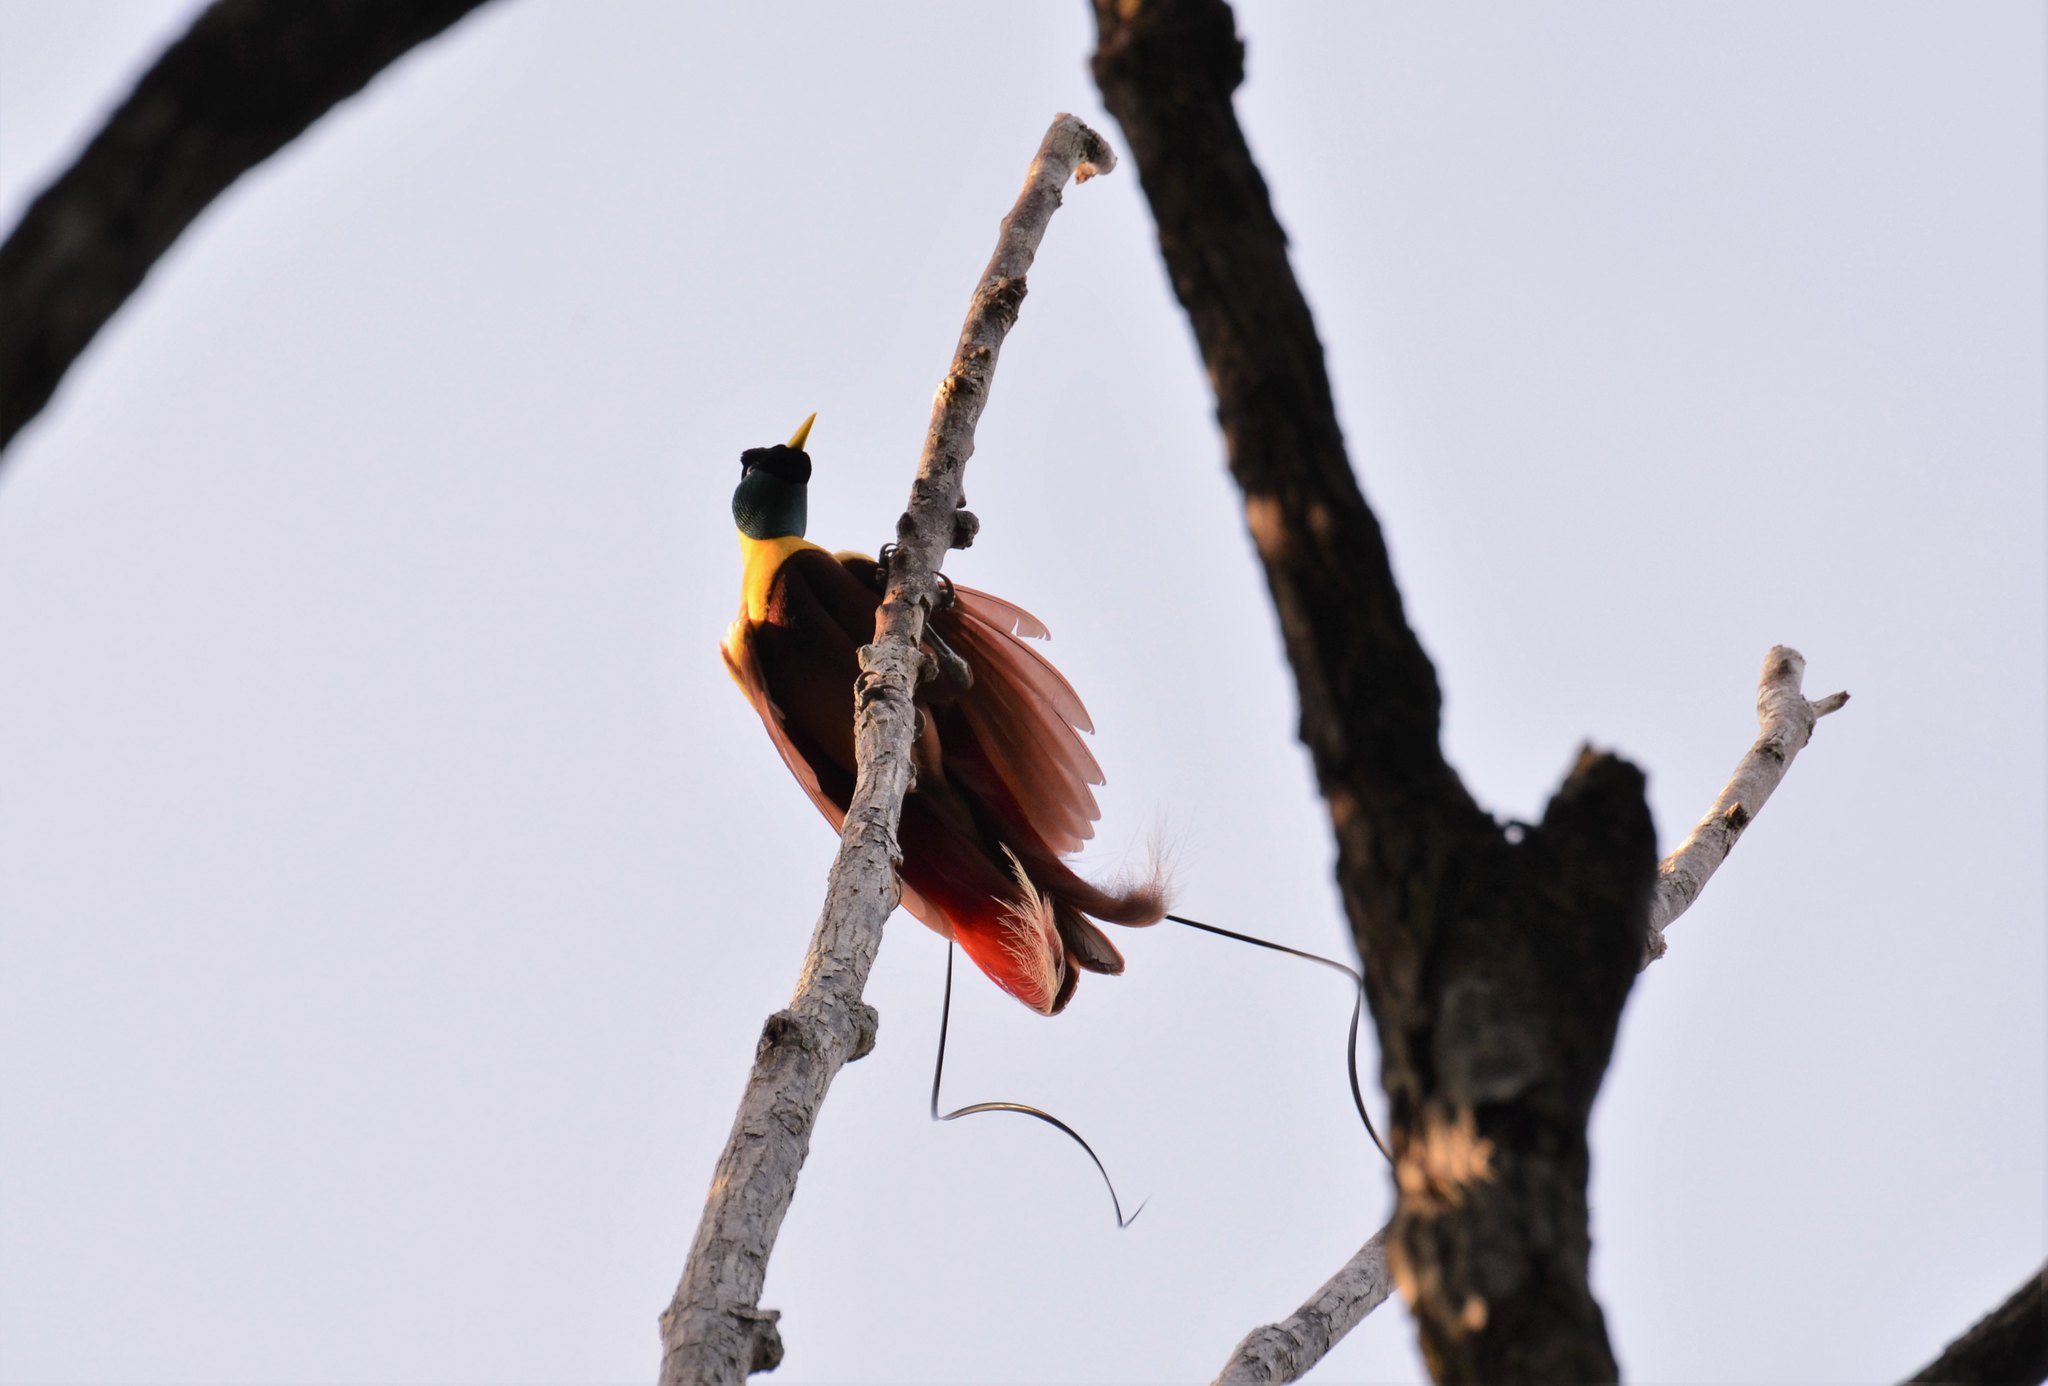 <p>One of Indonesia\'s iconic birds-of-paradise. Flickr/Pavel Kirillov</p>